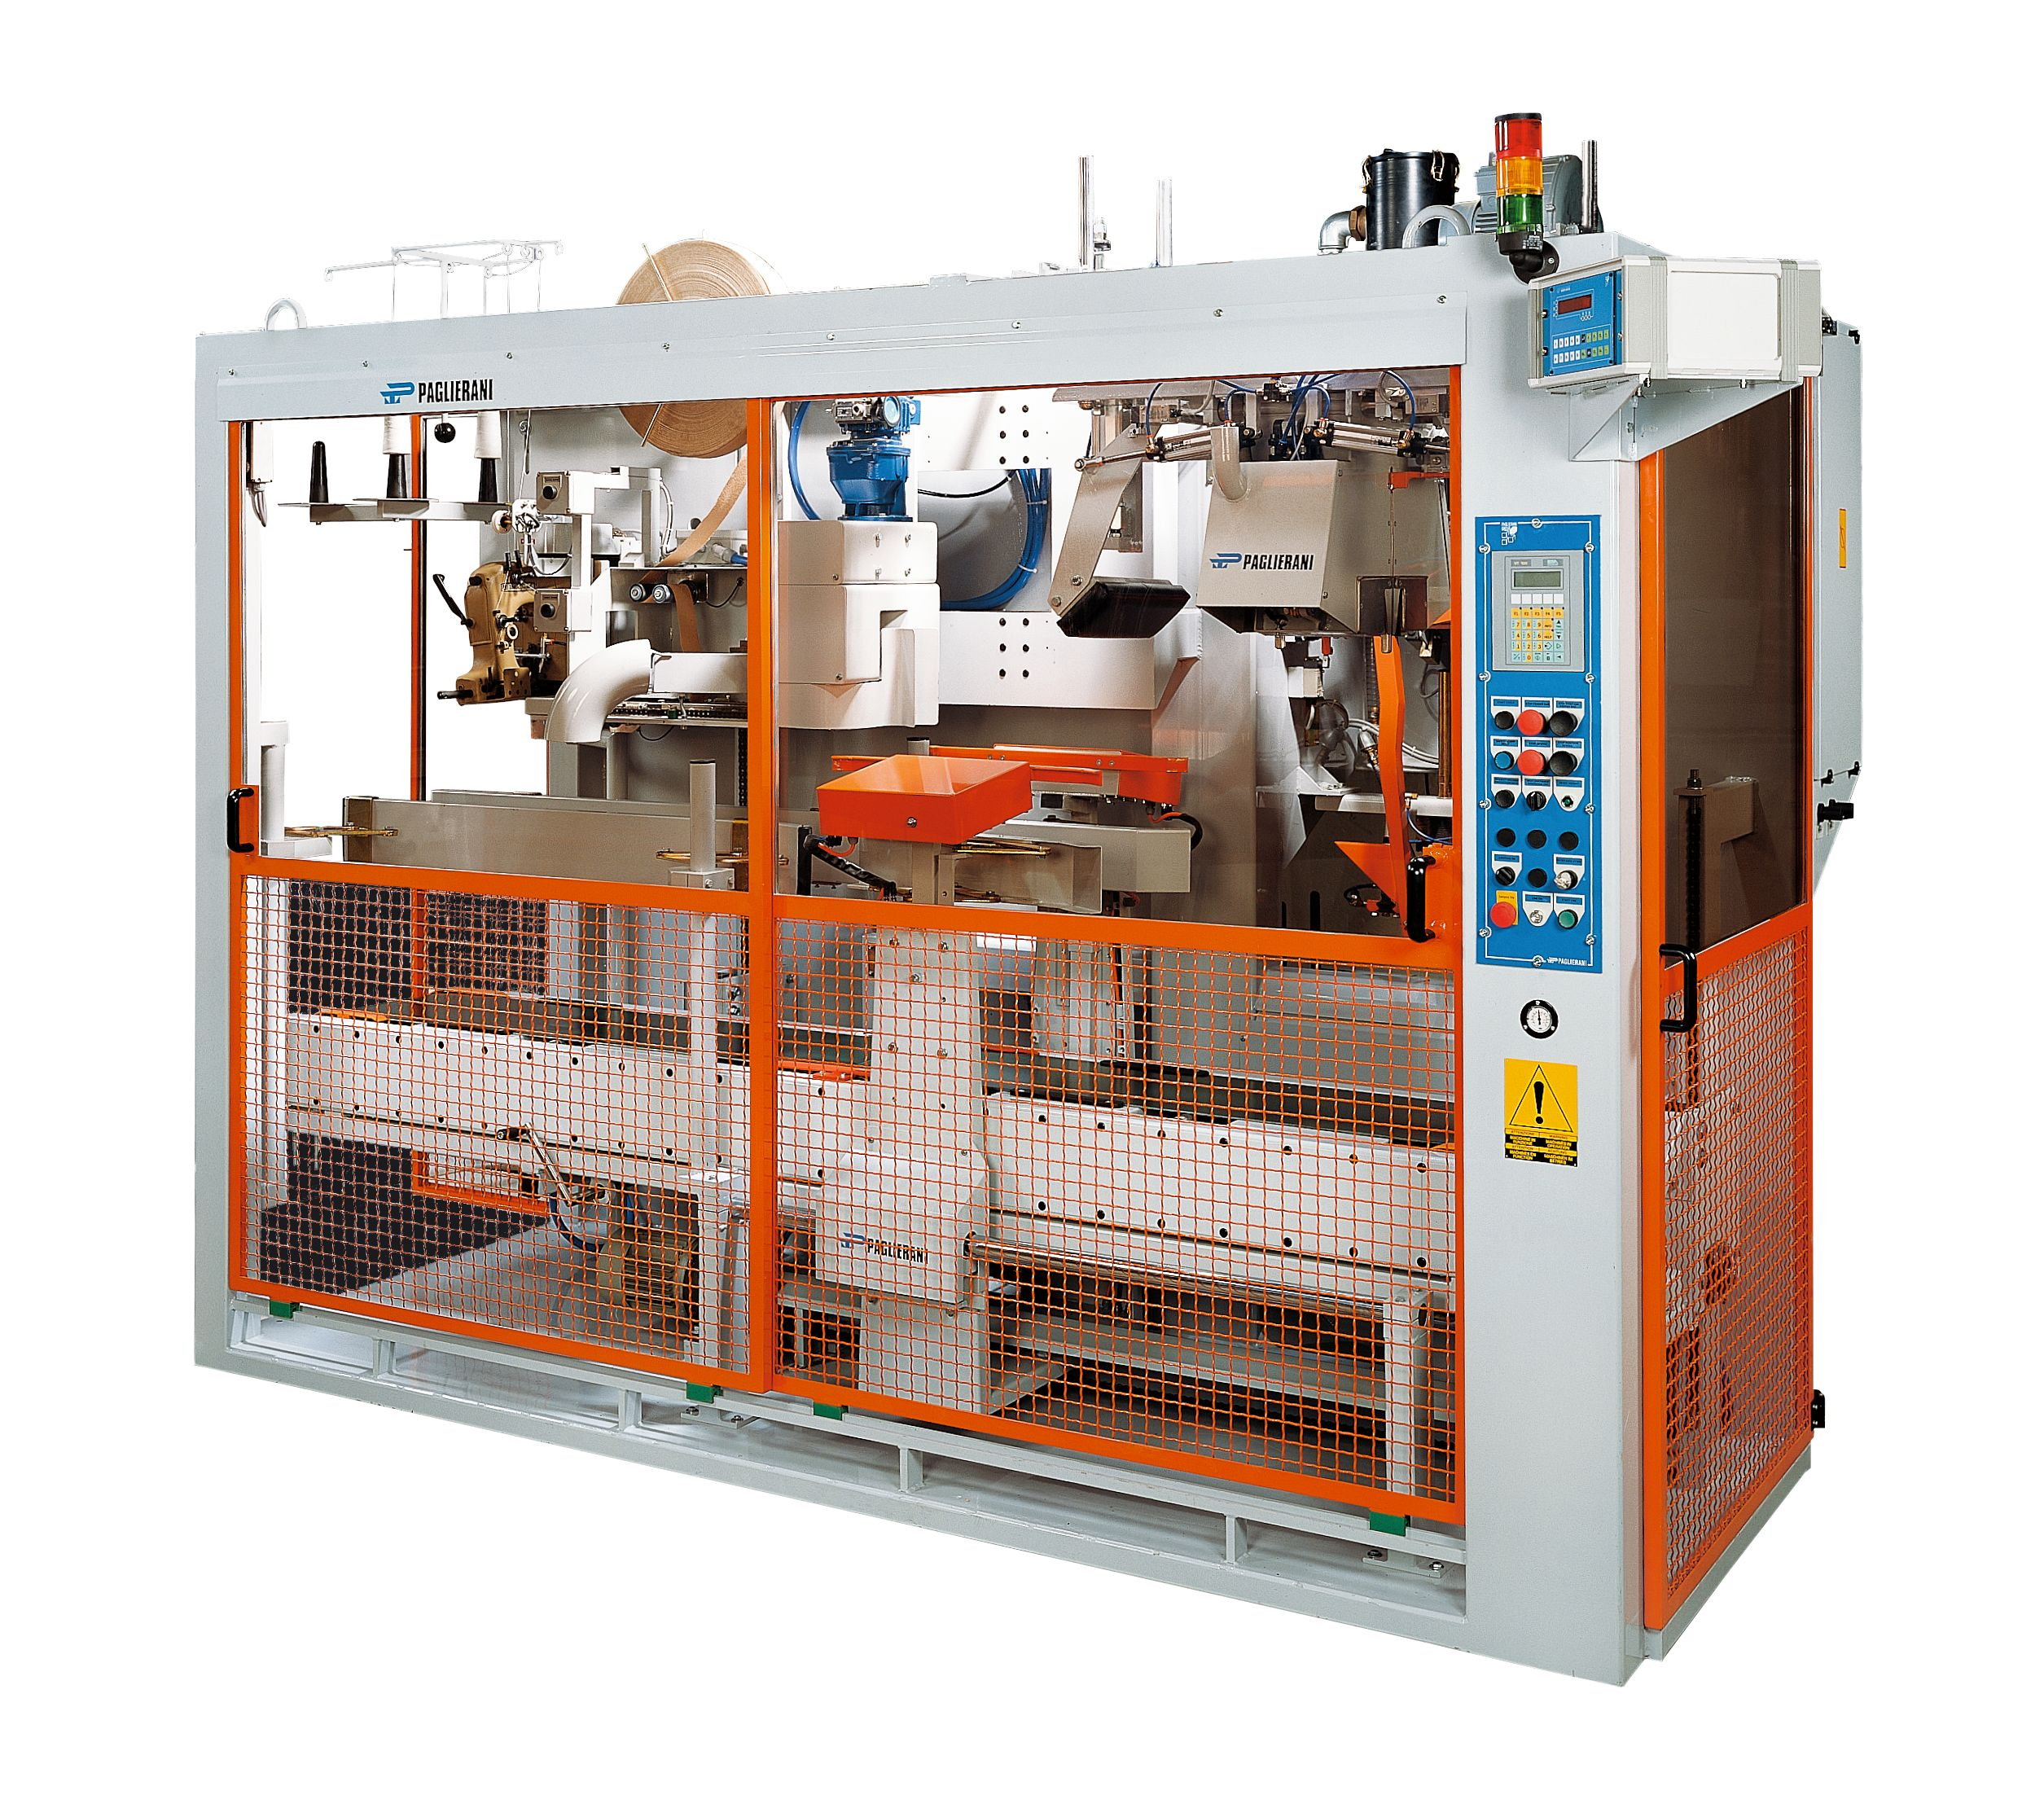 Automatic bagging machine for open mouth bags